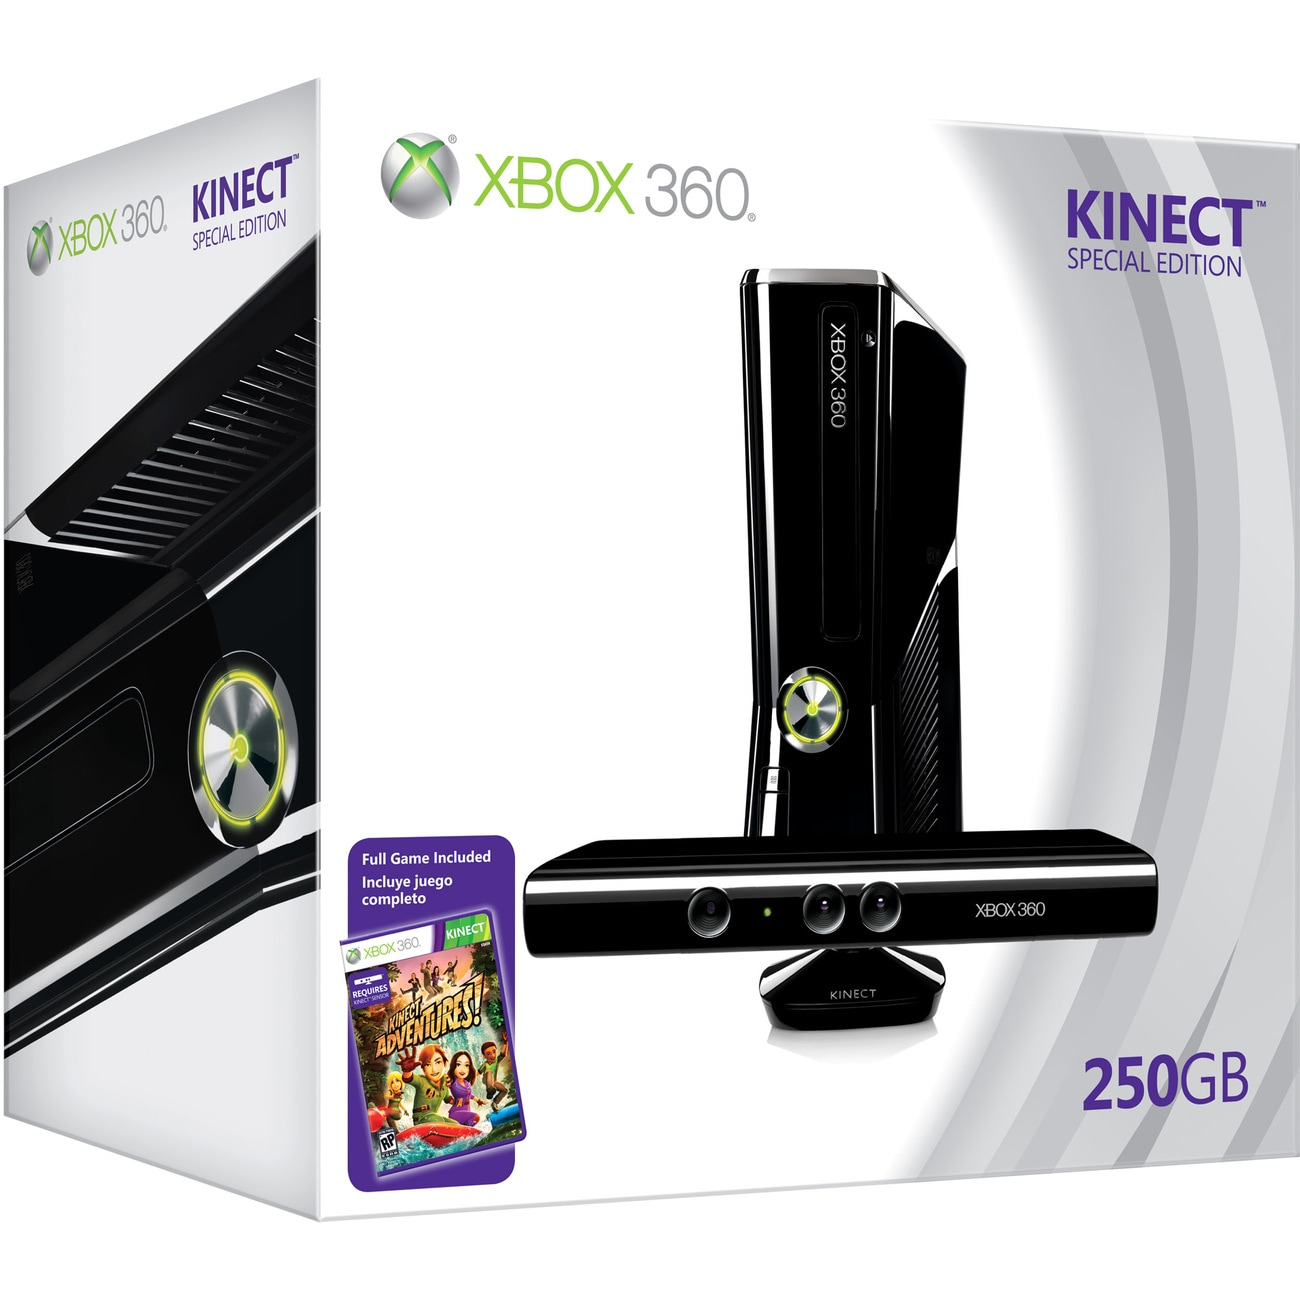 Xbox 360 - Limited Edition Kinect Holiday Bundle